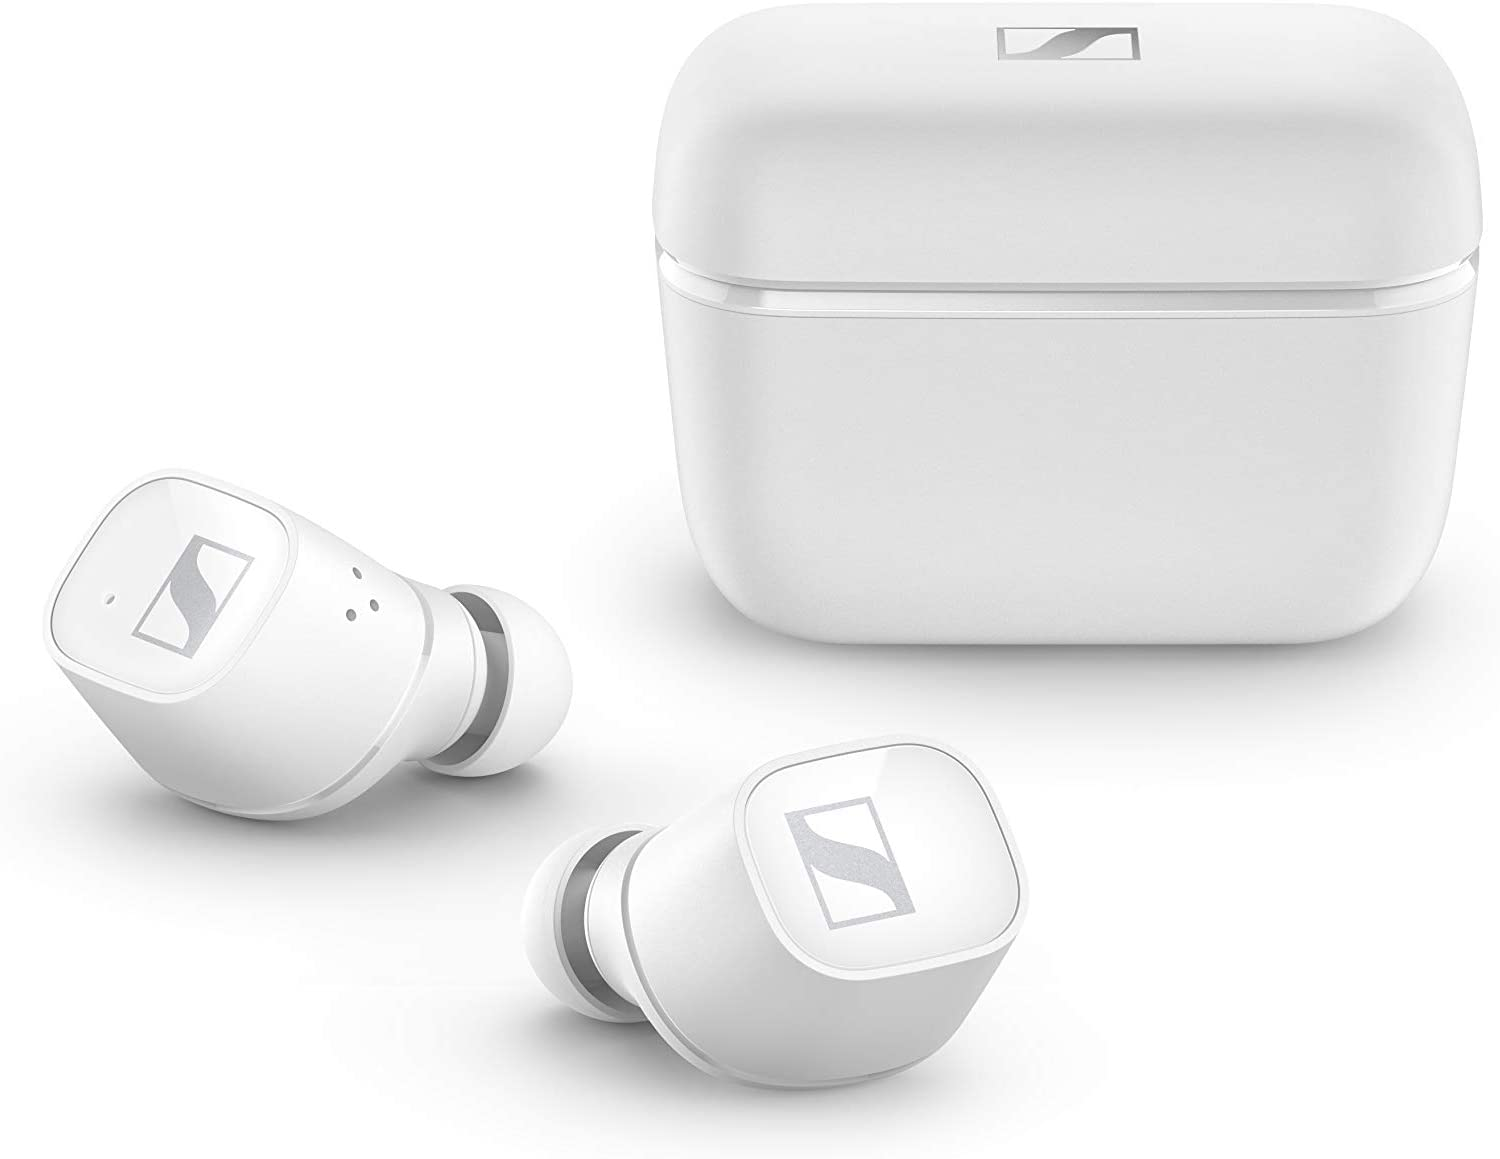 Sennheiser CX 400BT True Wireless Earbuds - Bluetooth in-Ear Headphones for Music and Calls - with Long-Lasting Battery Life and Customizable Touch Controls, White